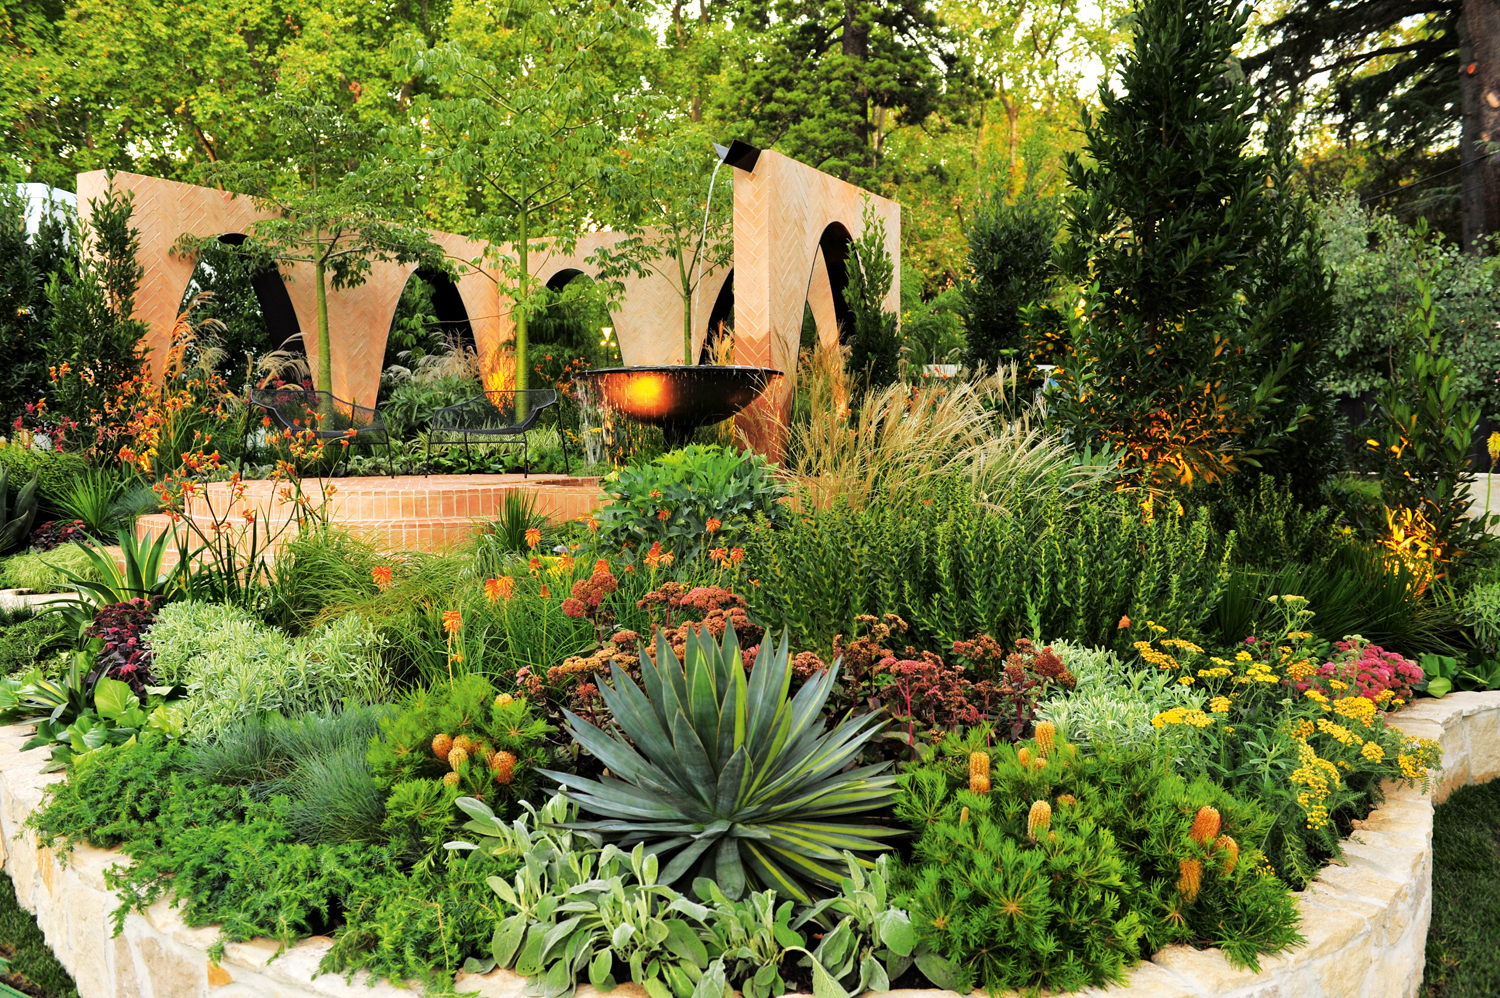 This striking courtyard garden has won 4 awards